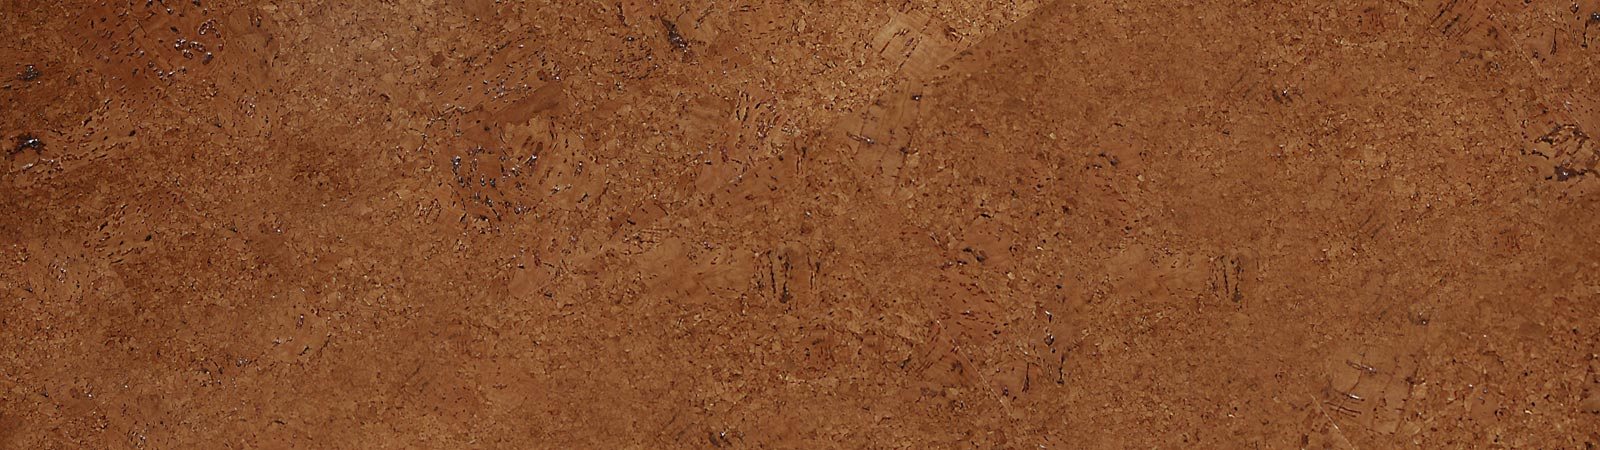 We cork cork flooring tiles underlayment products Sustainable cork flooring